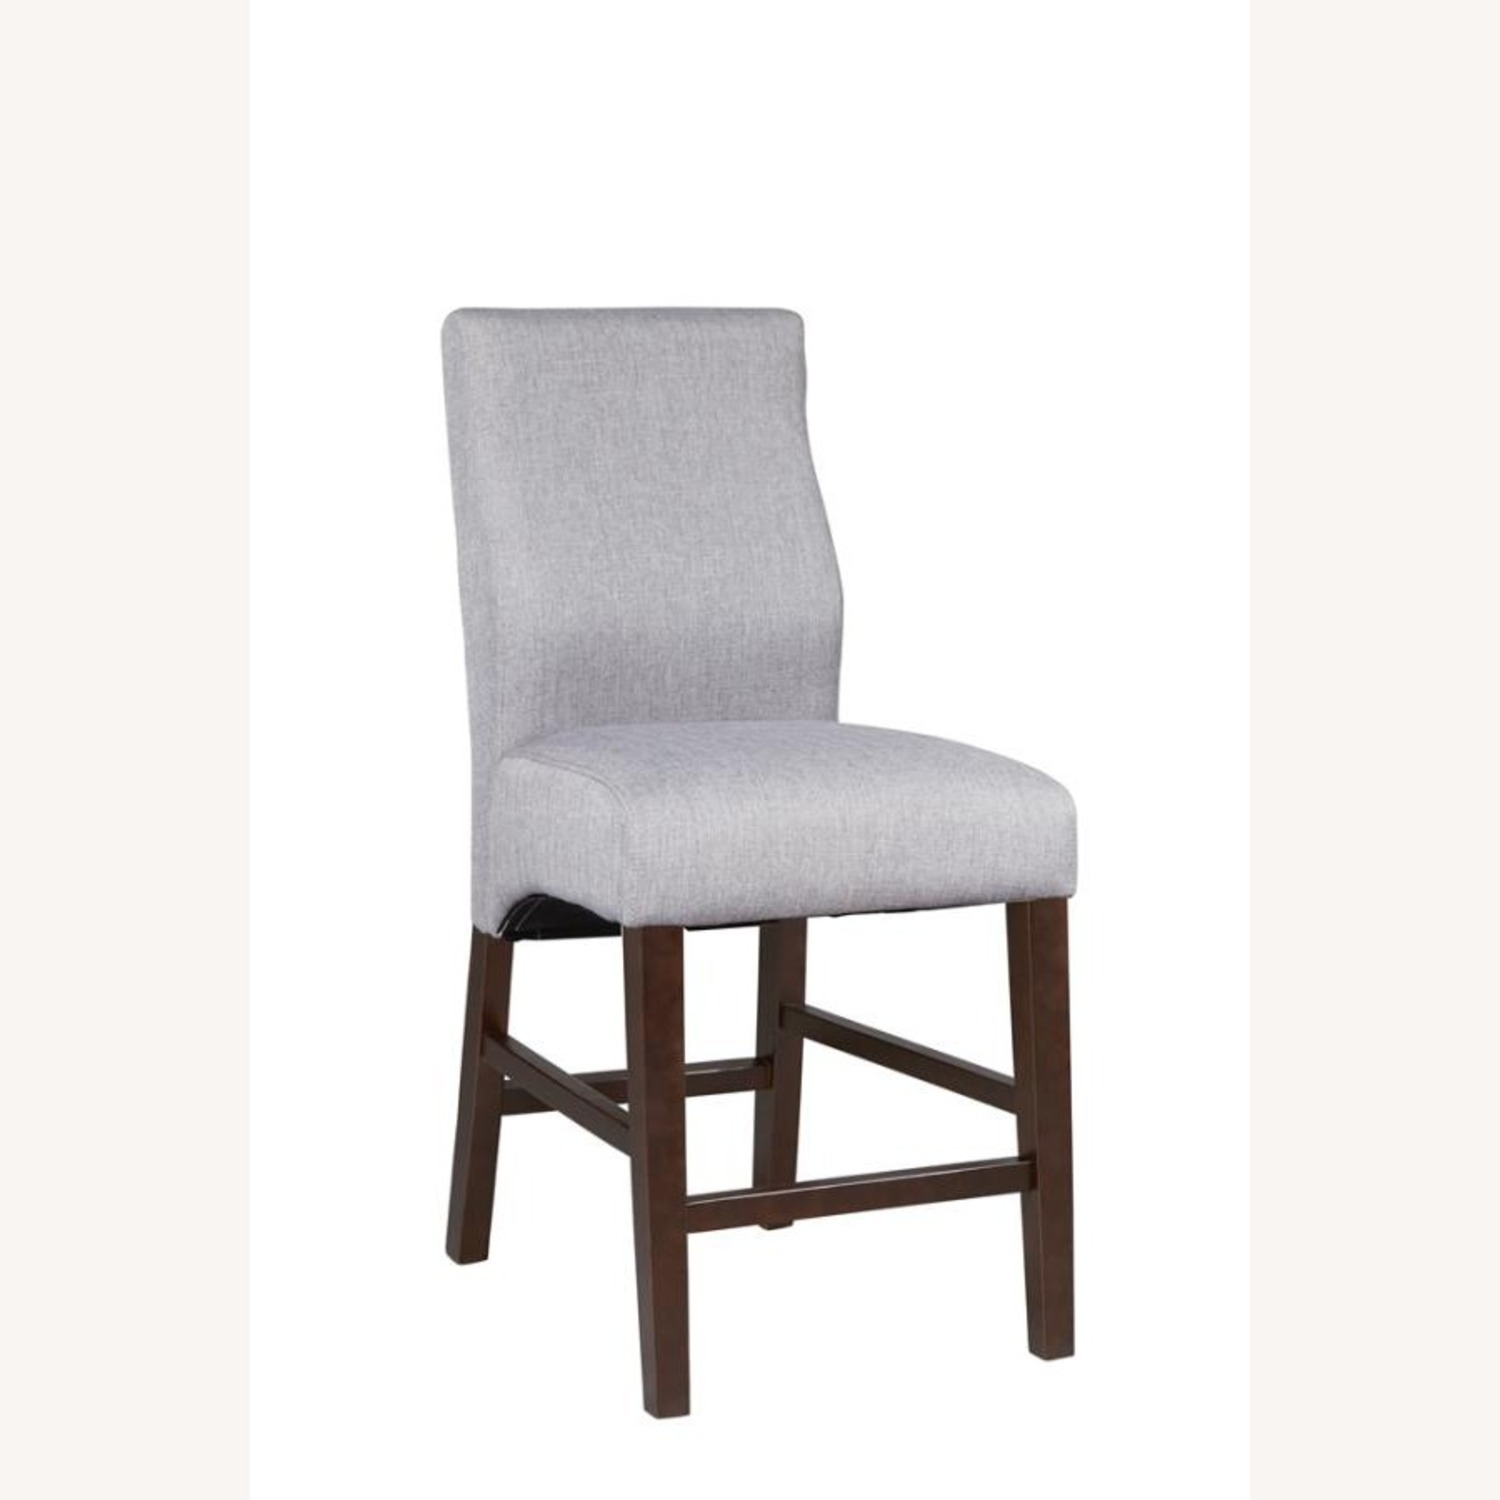 Counter Height Stool Upholstered In Grey Fabric - image-0